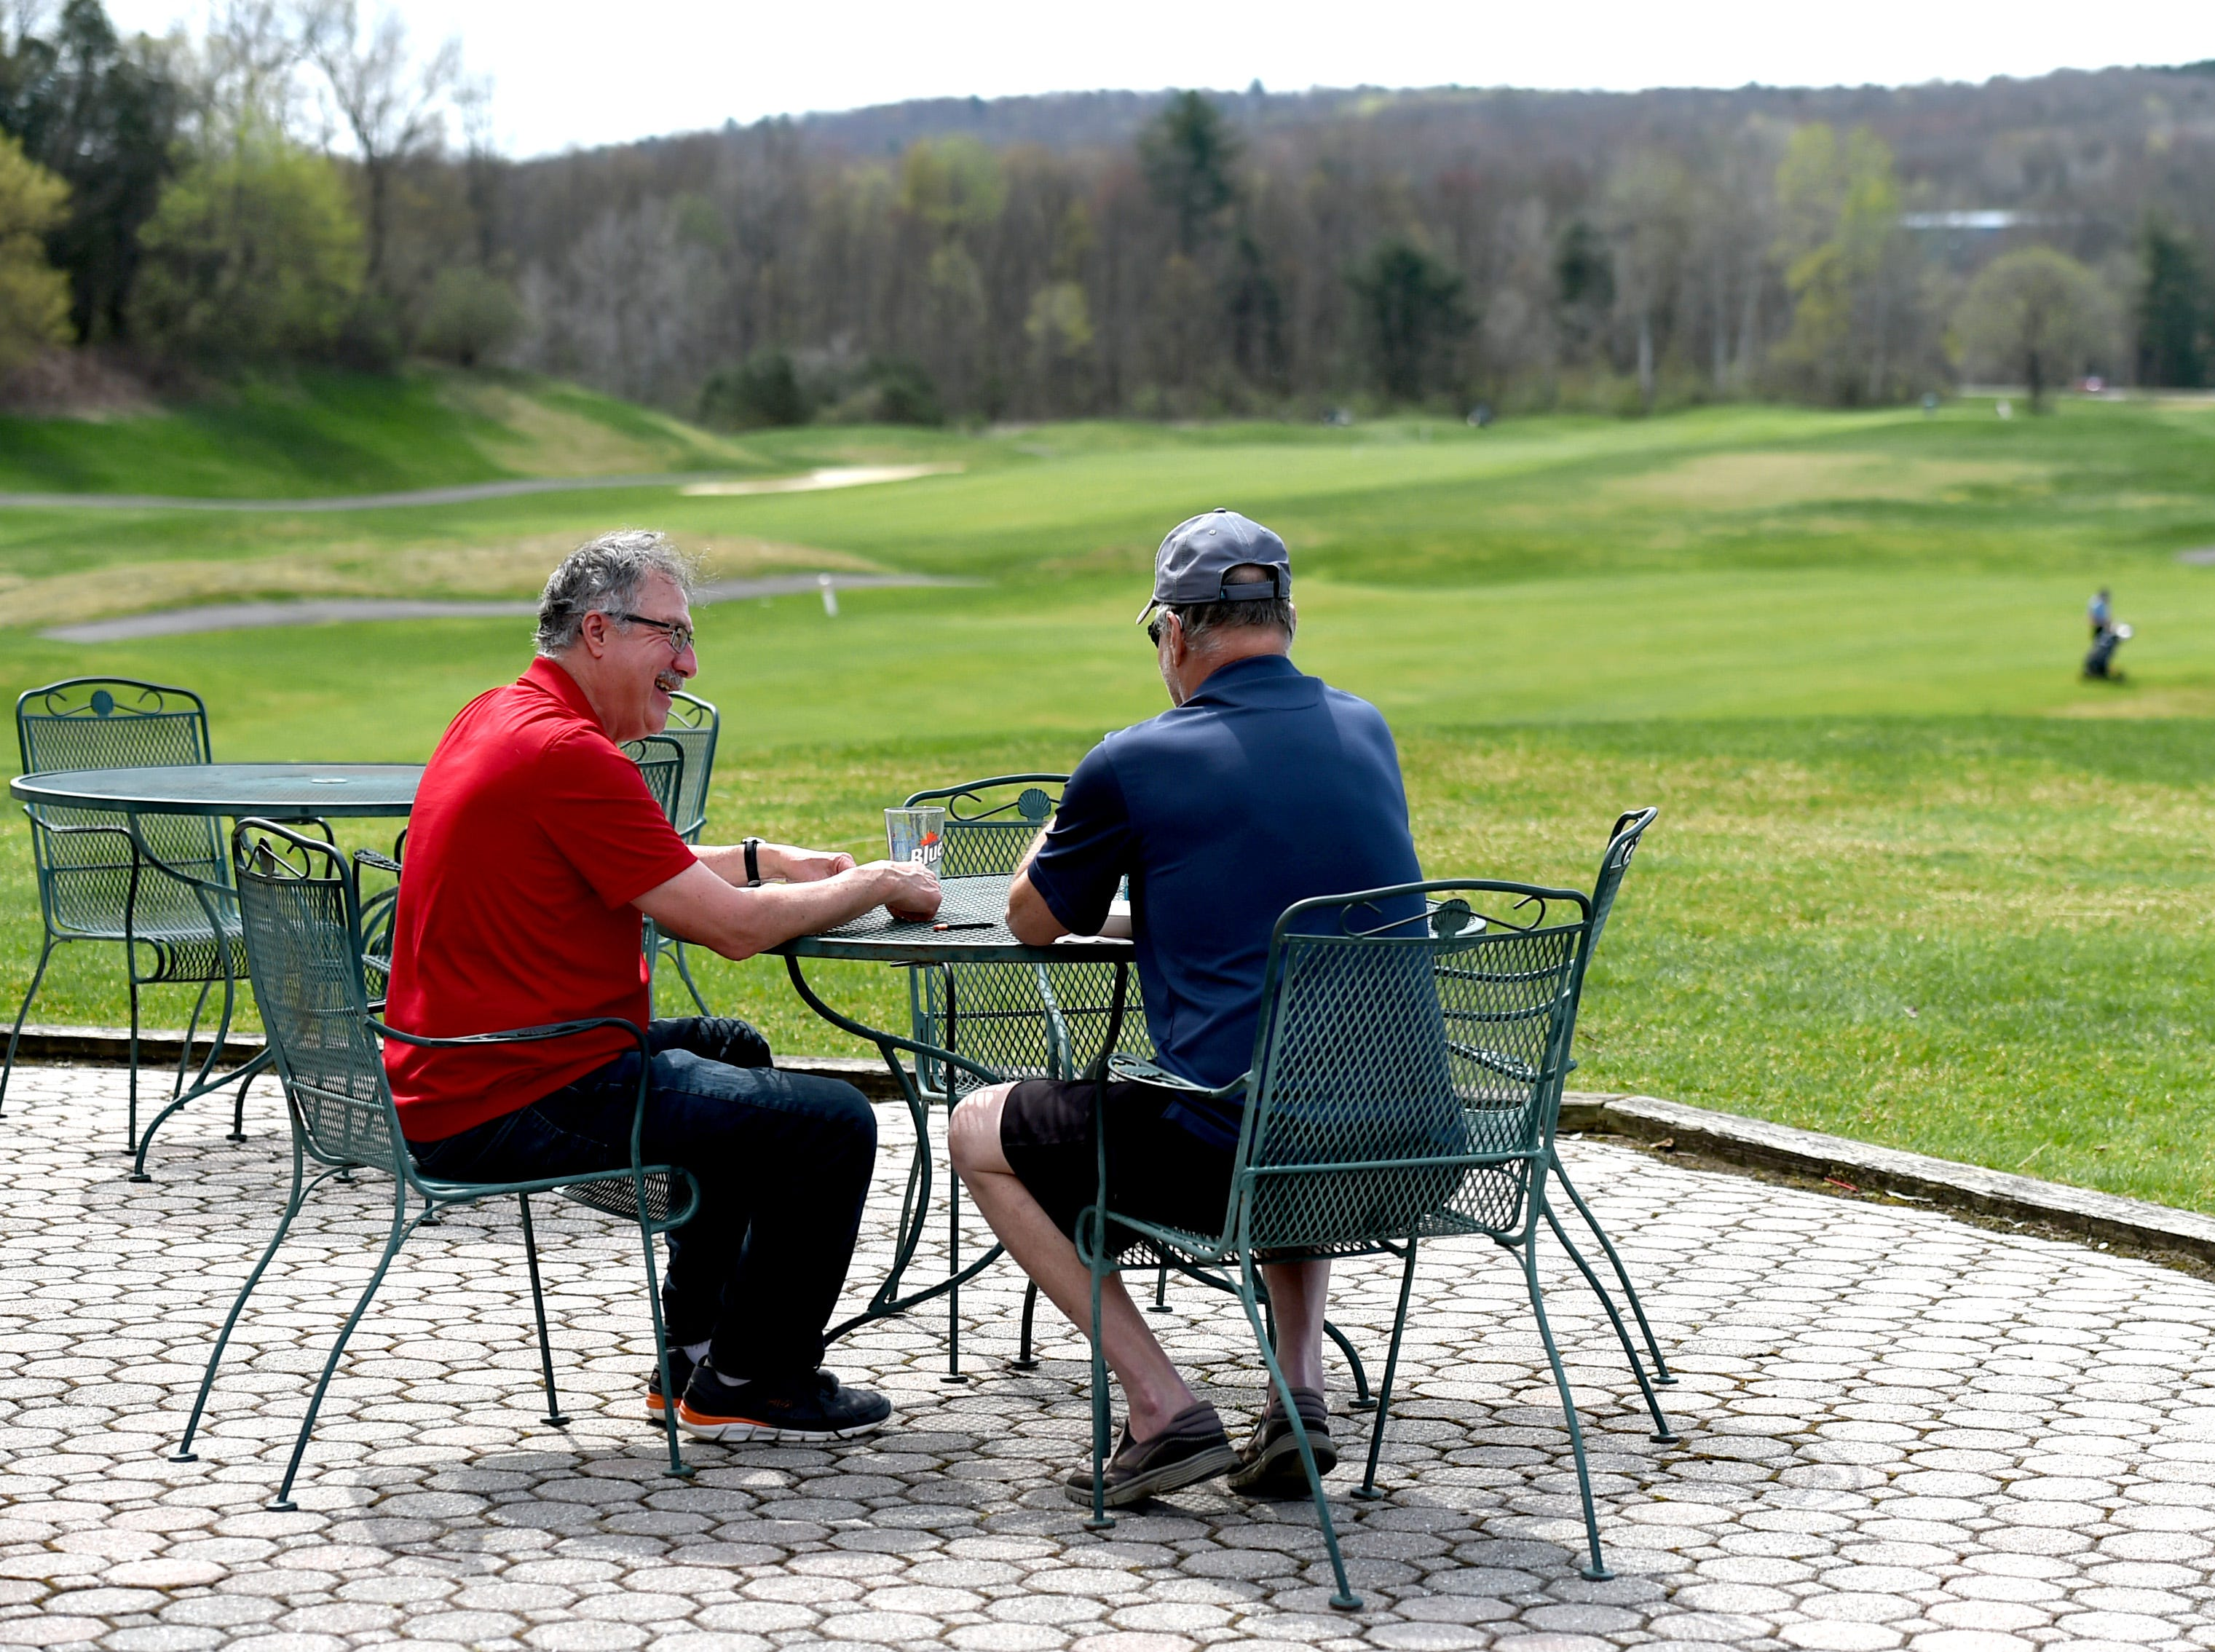 Rich Knight of Vestal, left, and Chris Wood of Newark Gallery, right, enjoy lunch after golfing at The Links at Hiawatha Landing on Tuesday, April 23, 2019.